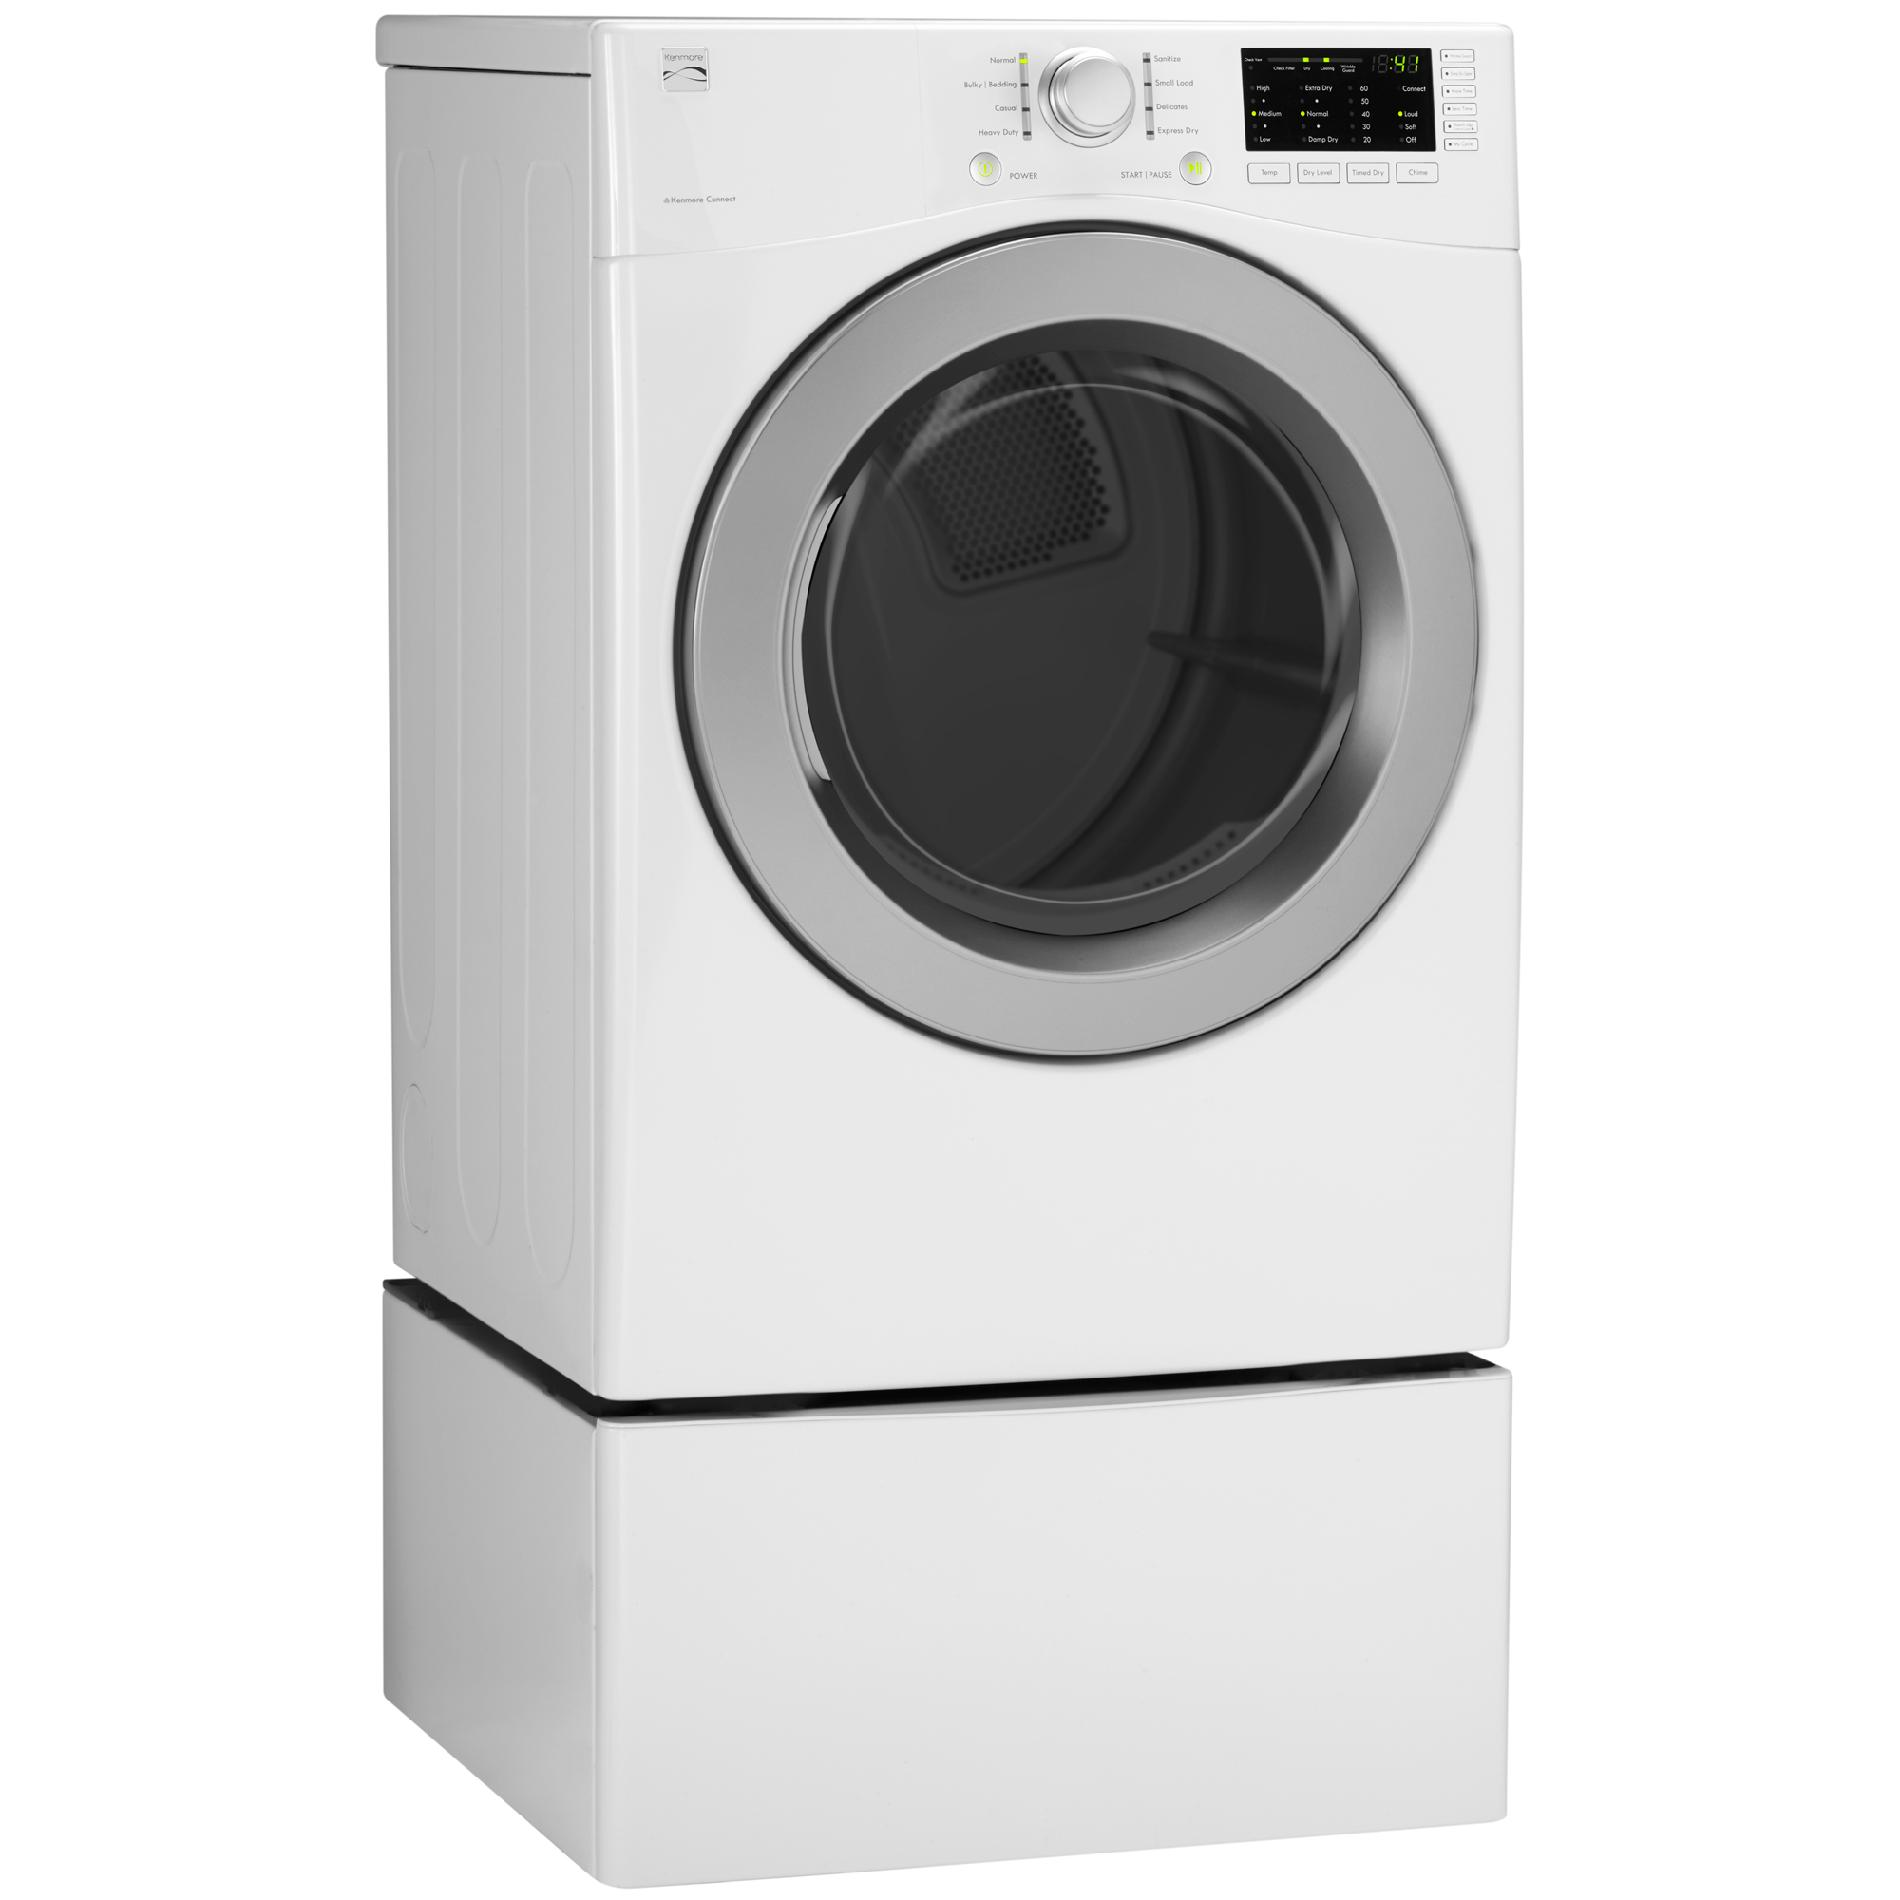 Kenmore 91182 7.3 cu. ft. Gas Dryer w/ Sensor Dry - White